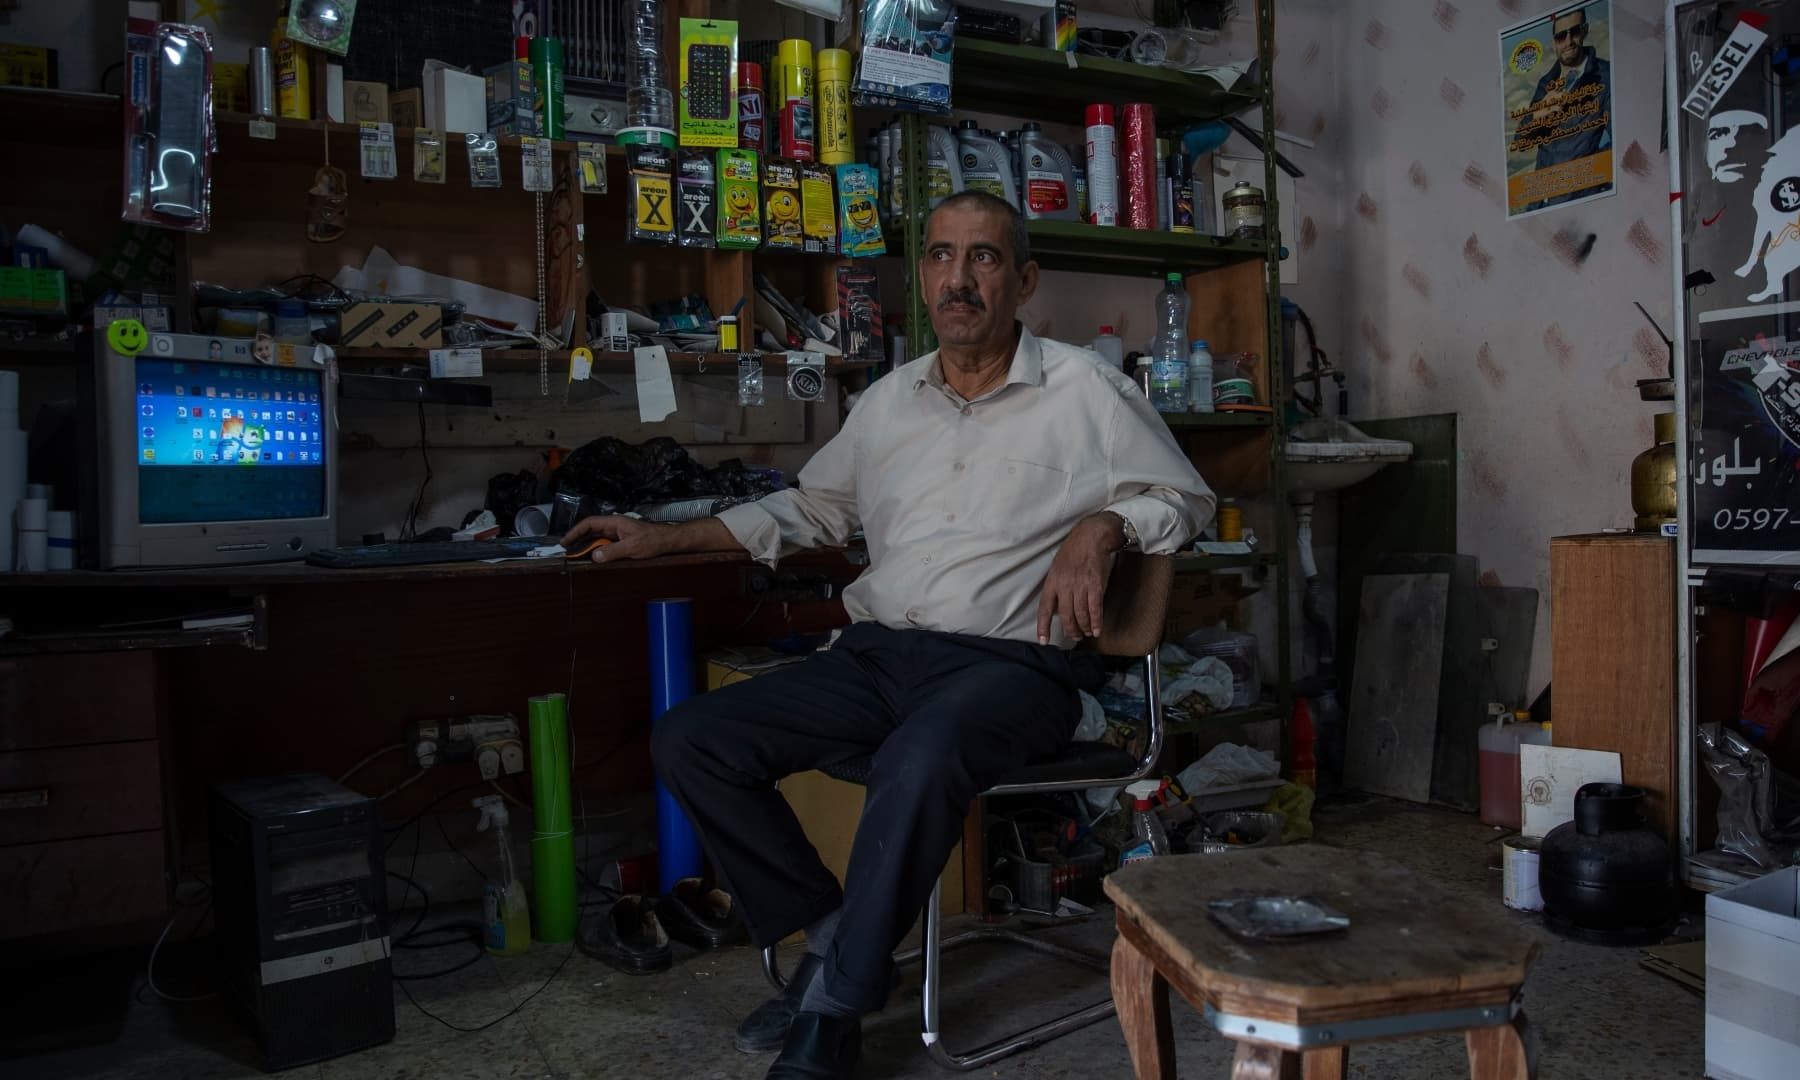 Palestinian Mustafa Erekat, whose son Ahmed was shot dead by Israeli forces at a West Bank checkpoint last year and held his body after, sits at his shop in the village of Abu Dis, South of Ramallah, Palestine on September 24, 2021. — AP